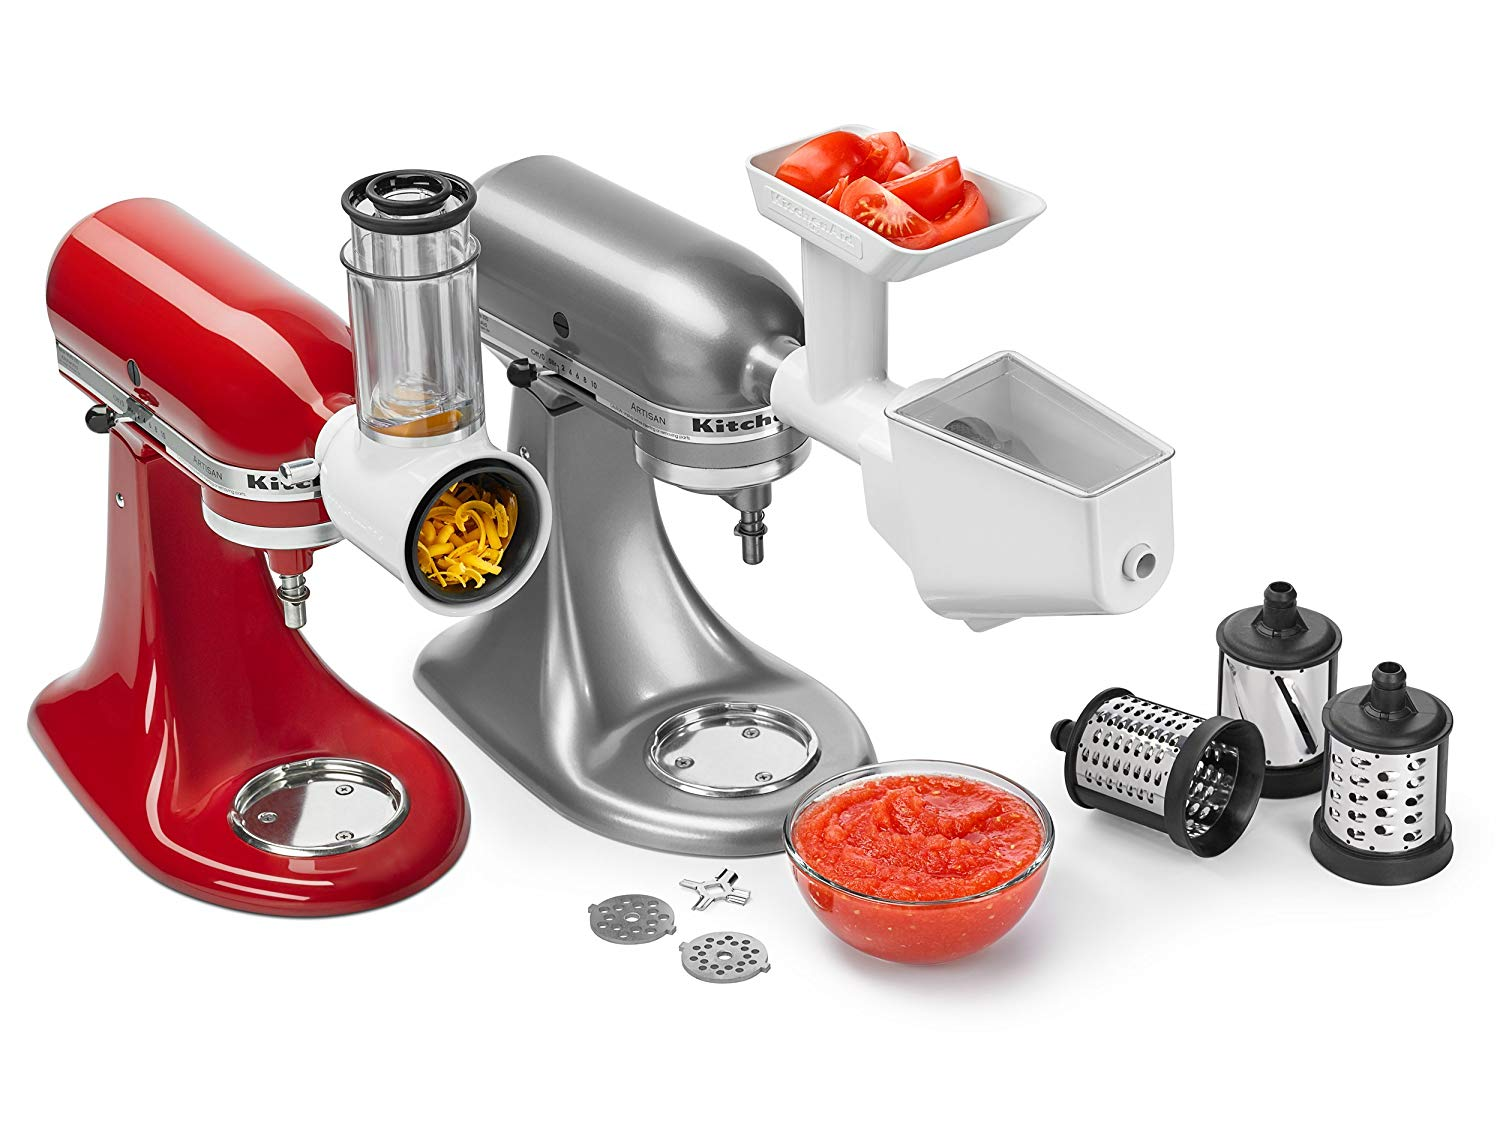 Slicer/Shredder + Grinder/Strainer Attachment Pack - KSMFPPA